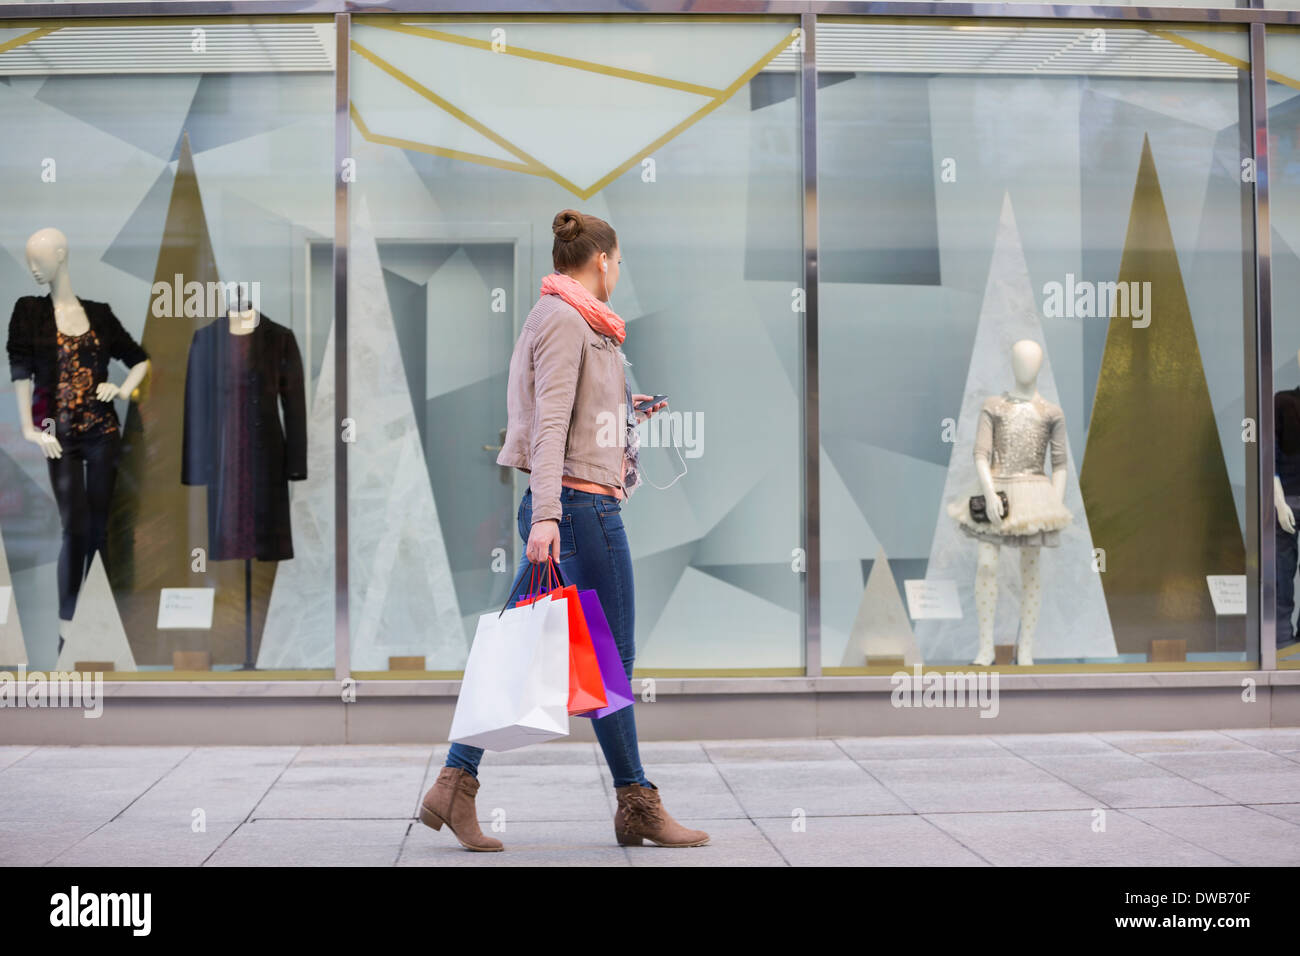 Profile shot of young woman with shopping bags looking at window display - Stock Image